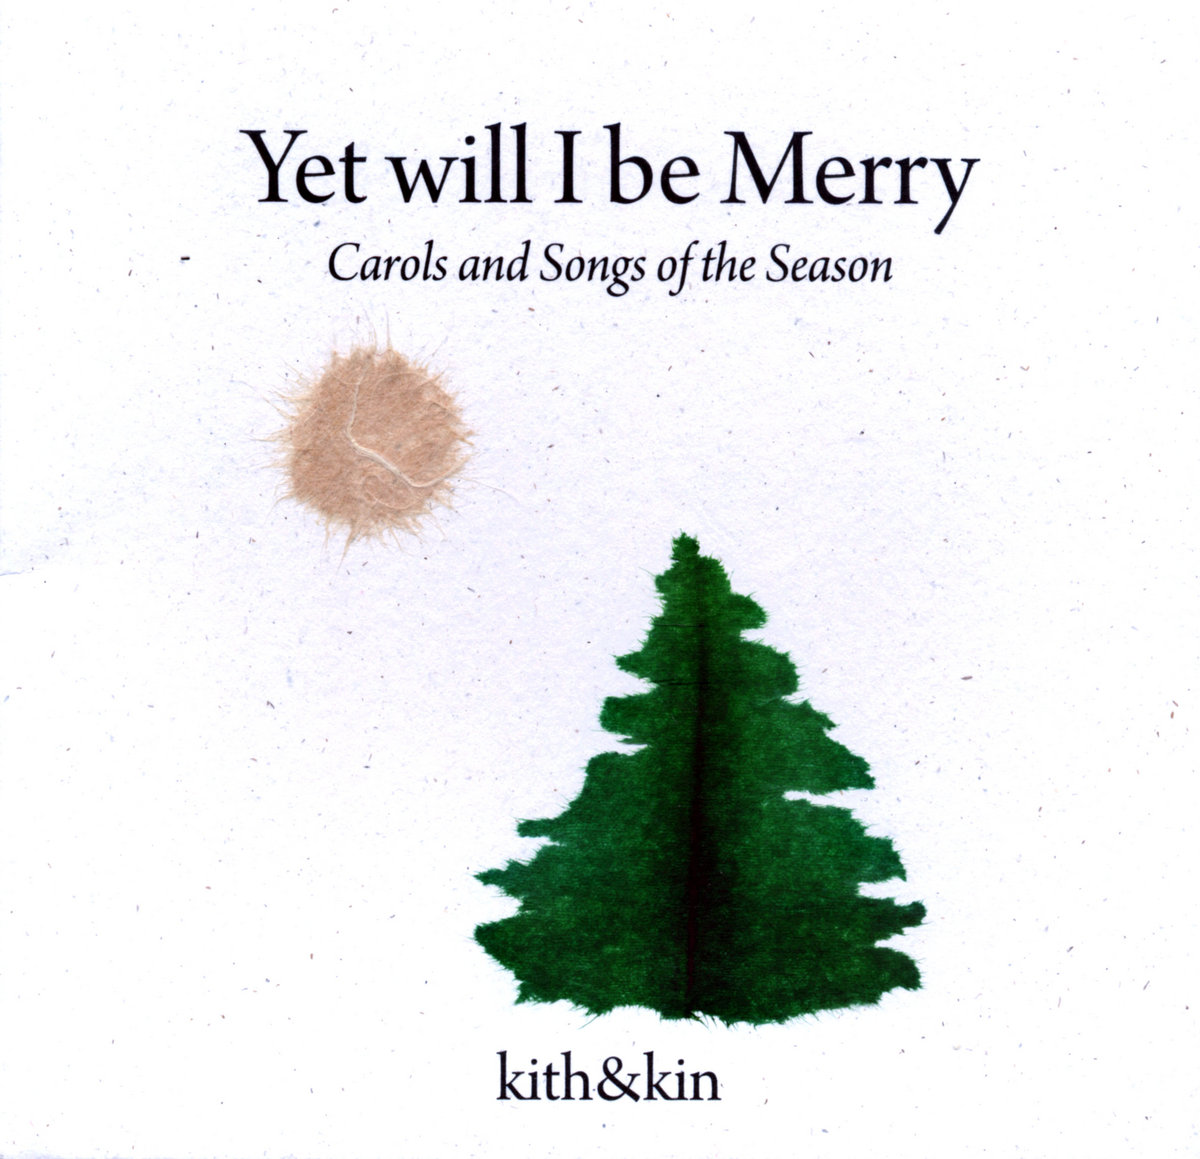 Yet Will I Be Merry - Carols and Songs of the Season | kith & kin